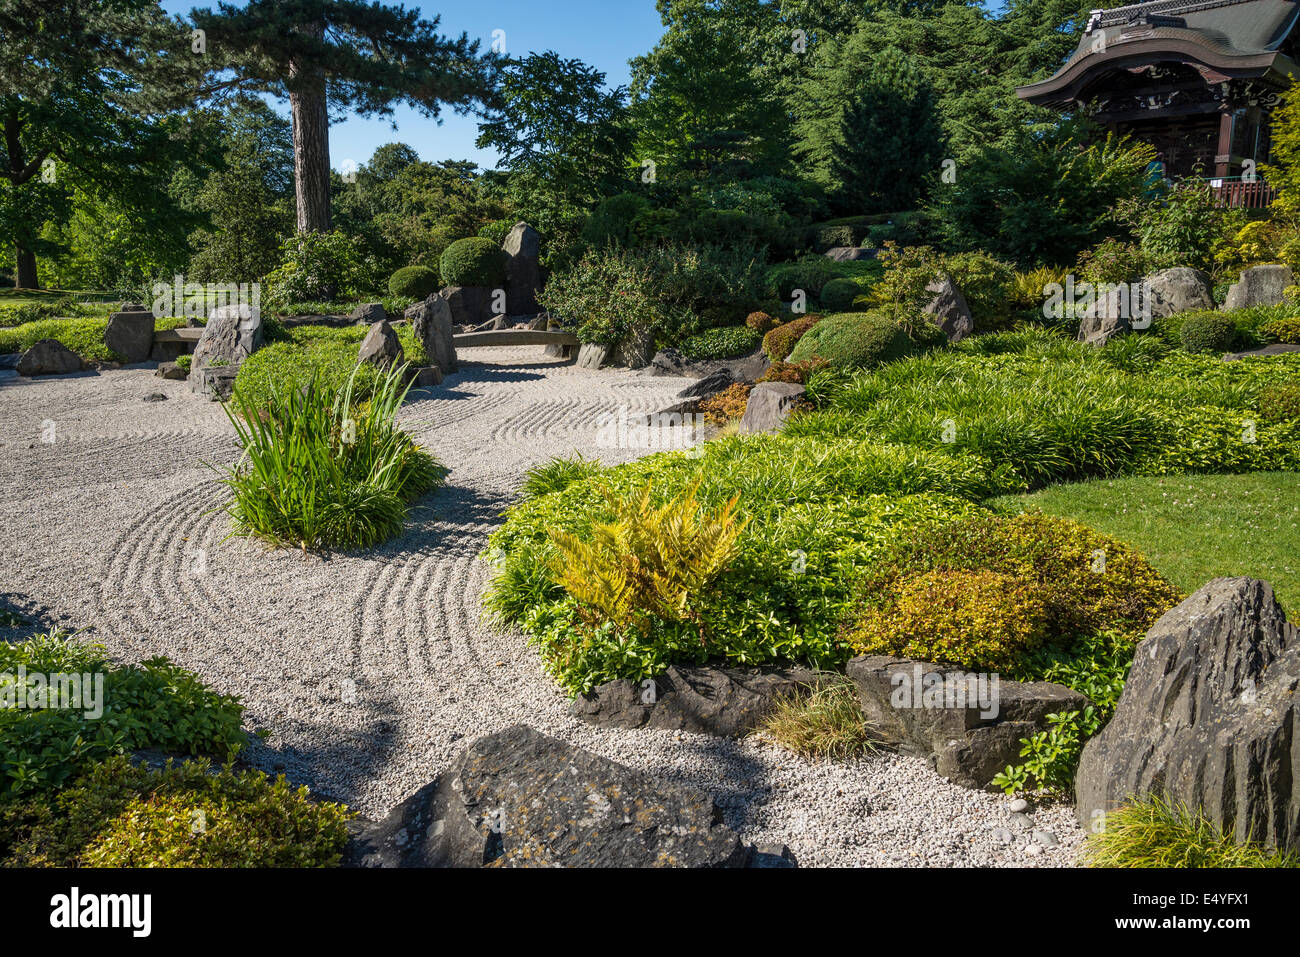 Japanese garden with raked gravel, Kew Royal Botanic Gardens, London, UK - Stock Image